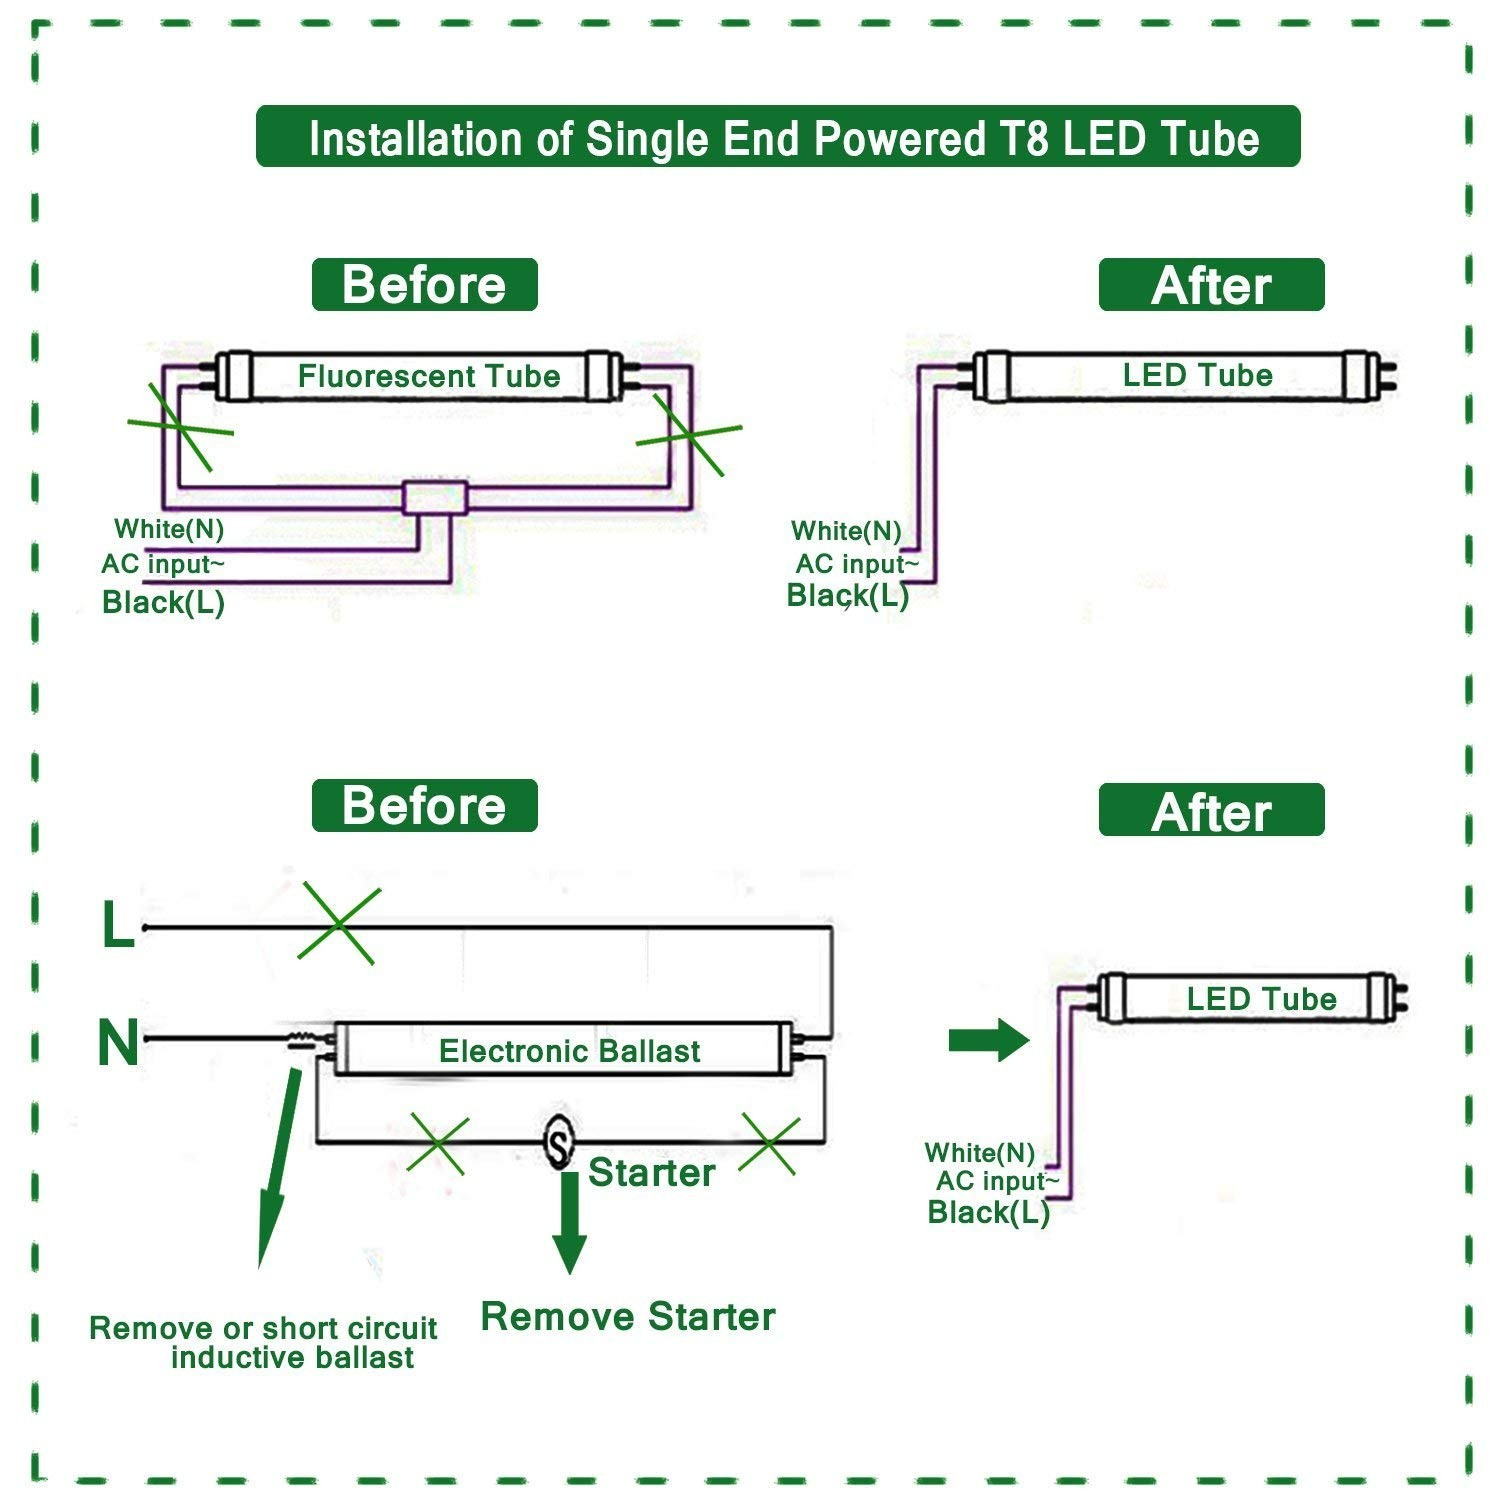 led tube light wiring diagram Collection-Wiring Diagram for Fluorescent Light Fresh Wiring Diagram for Led Tubes Refrence Wiring Diagram Led Tube 17-b